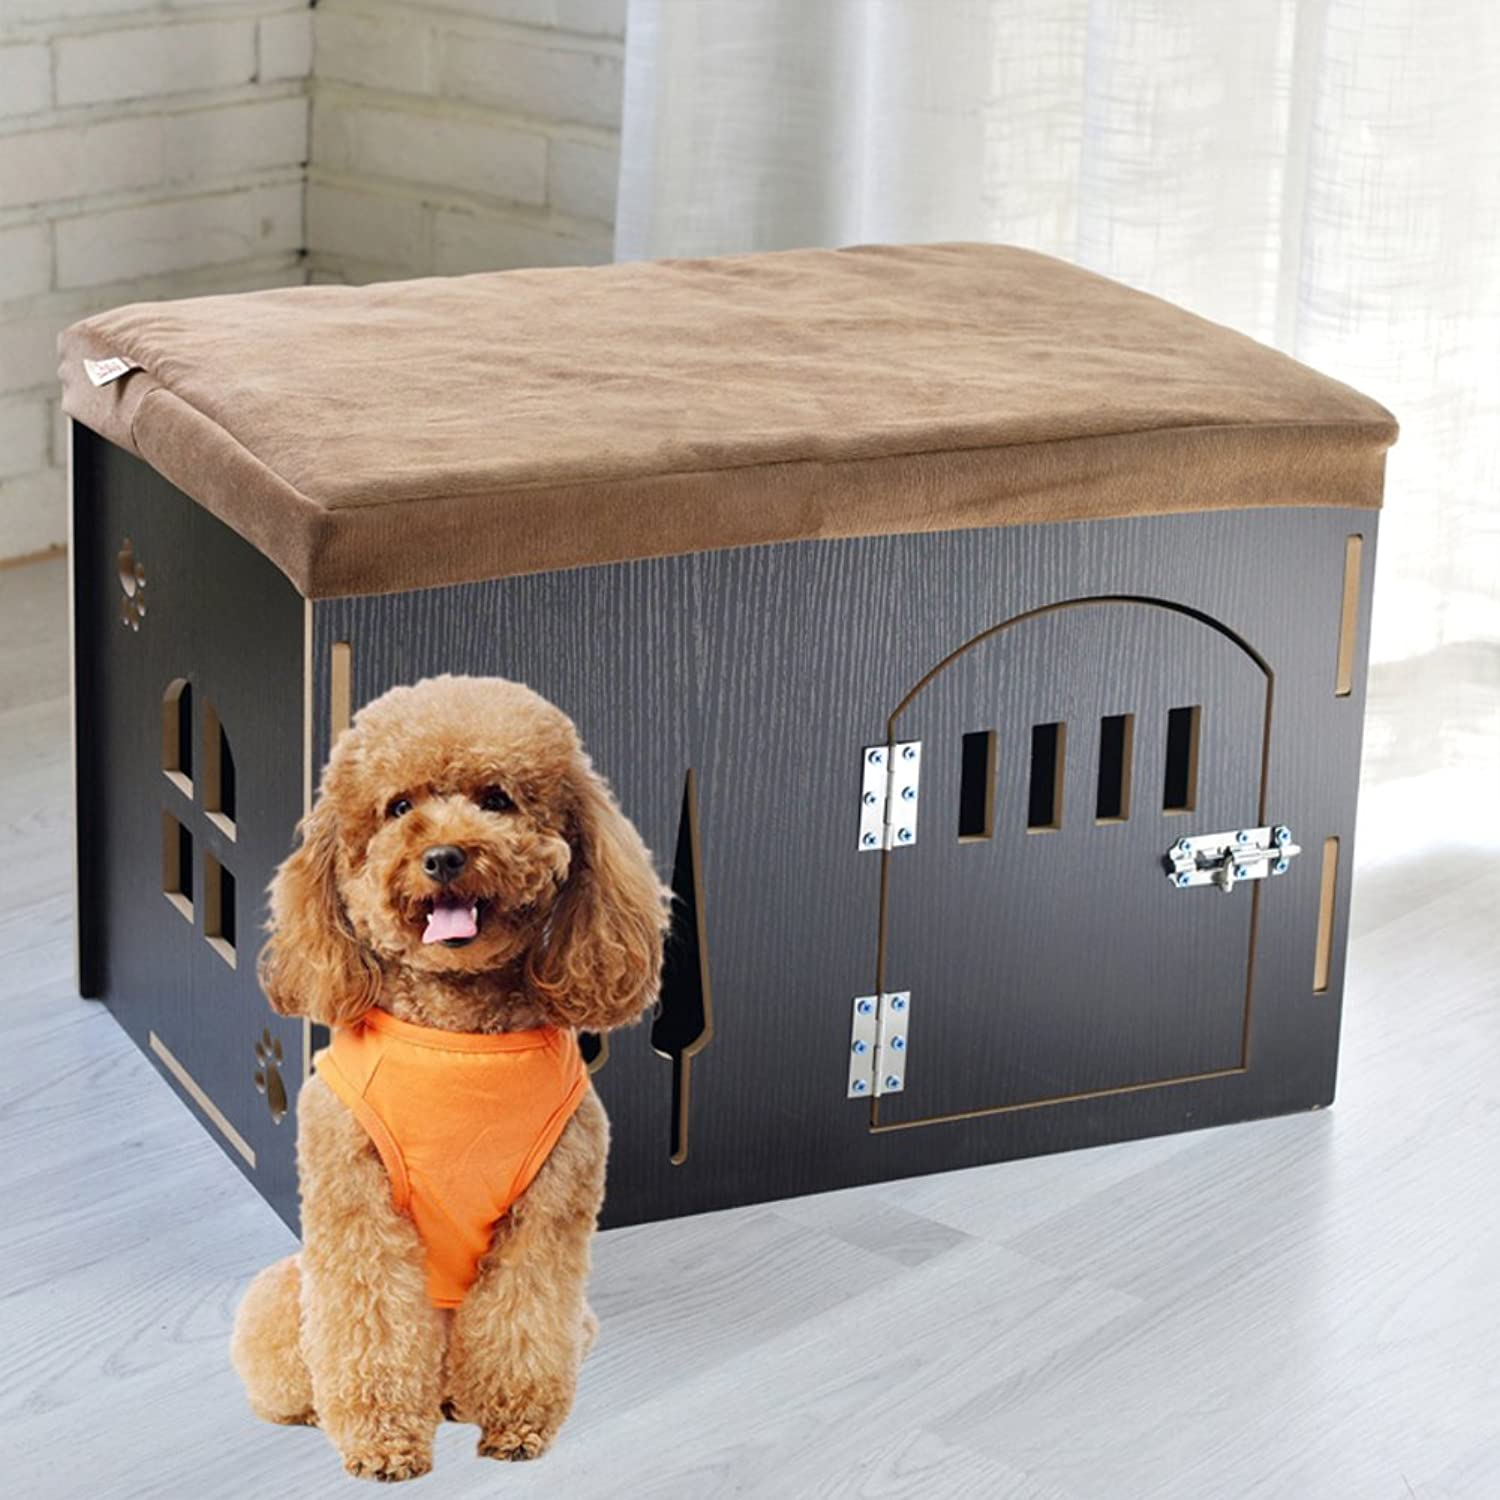 Nclon The rabbit [dog] [cat] Home [housing] Changing shoes stool Removable Pet cages [house] Wood [housing] Changing shoes stoolRed pine lengthened  with door 59  41  39cm